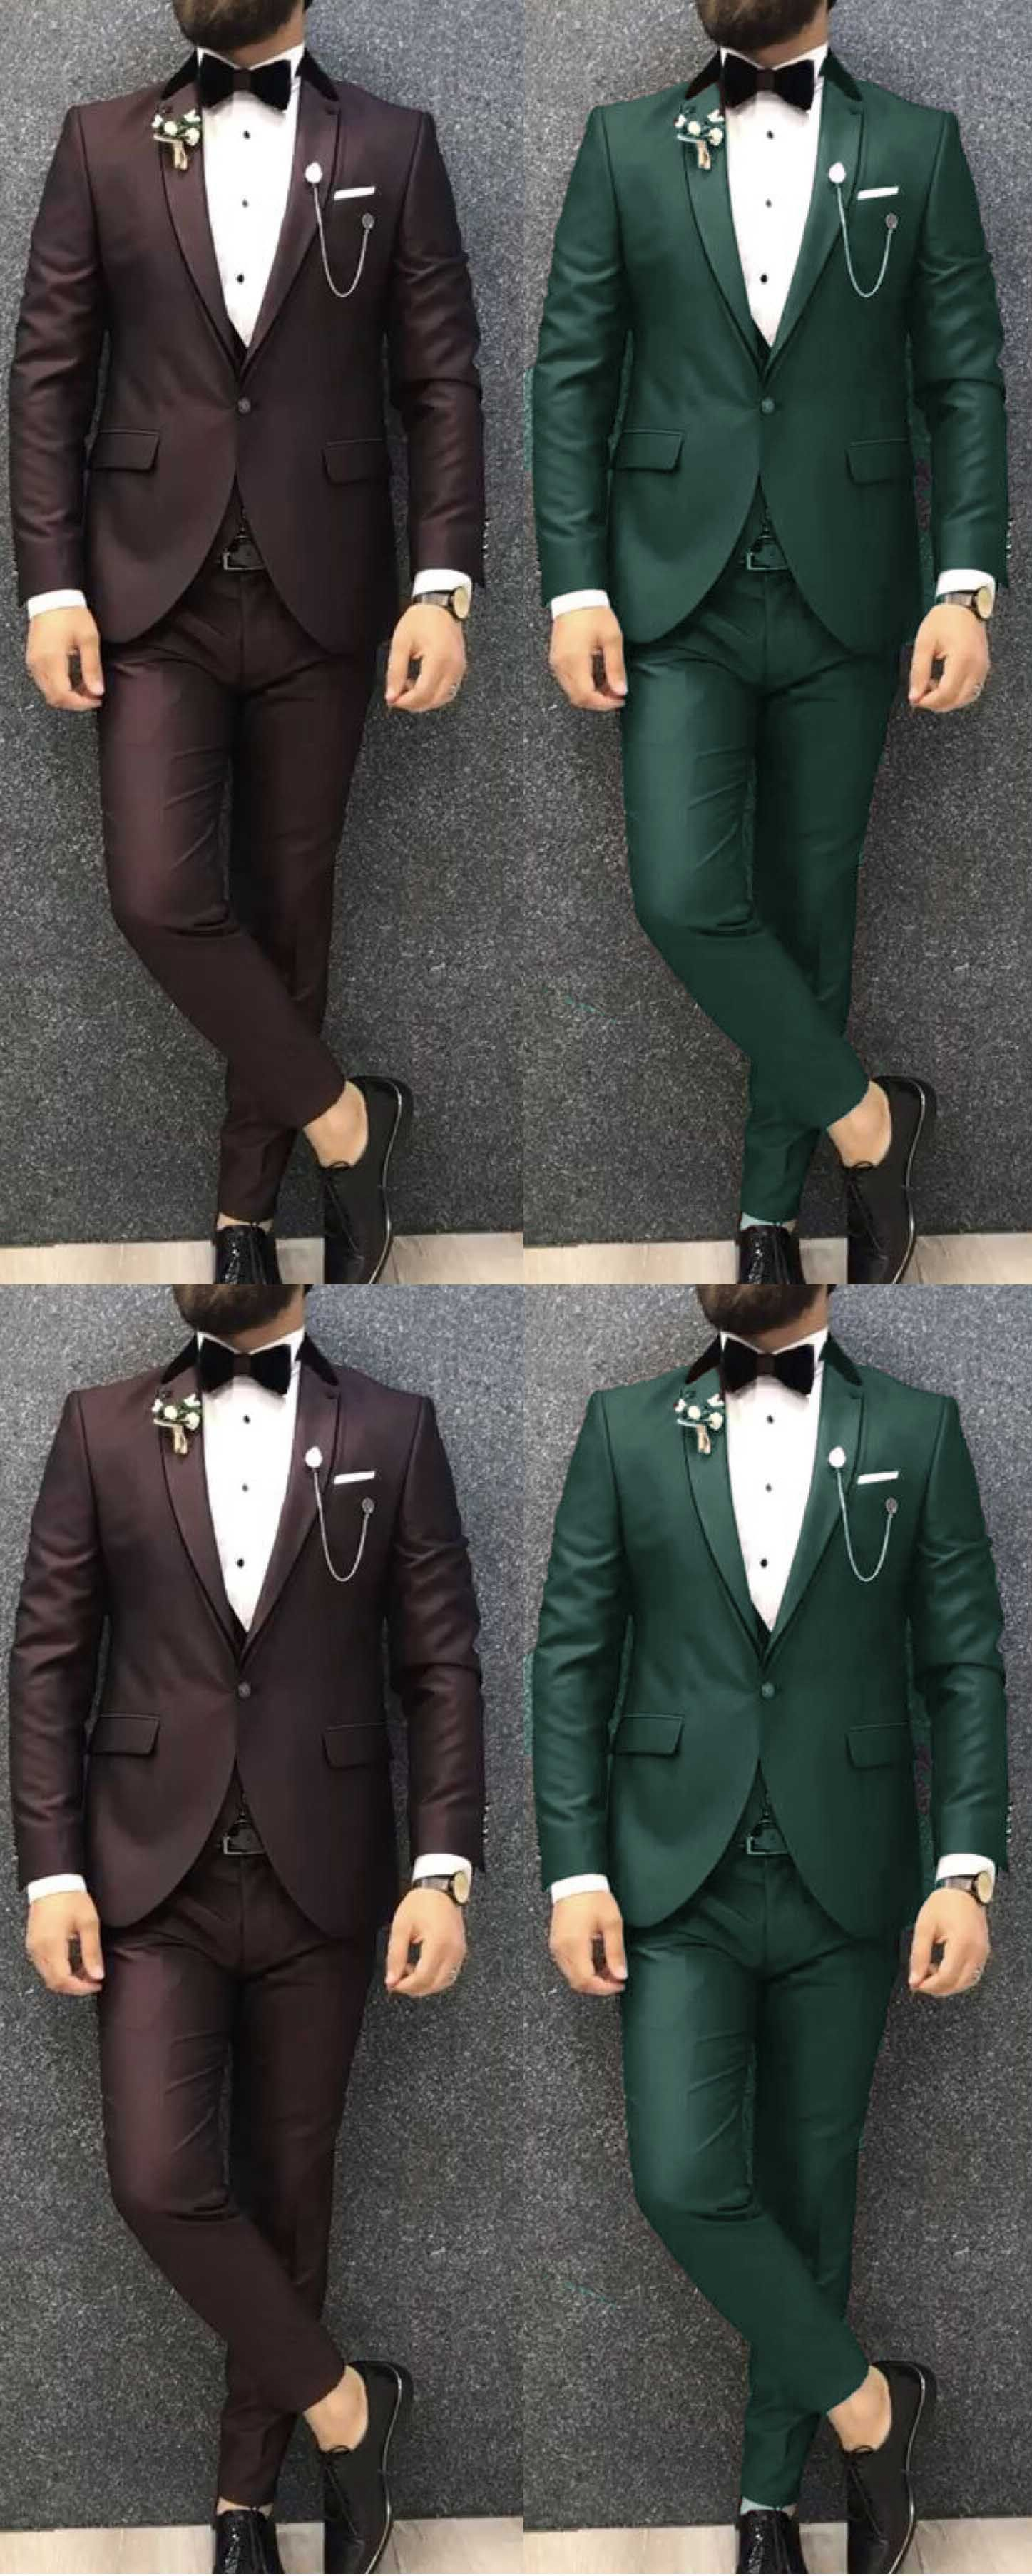 Chocolate/Green Two Pieces Prom Tuxedos 2020 Wedding